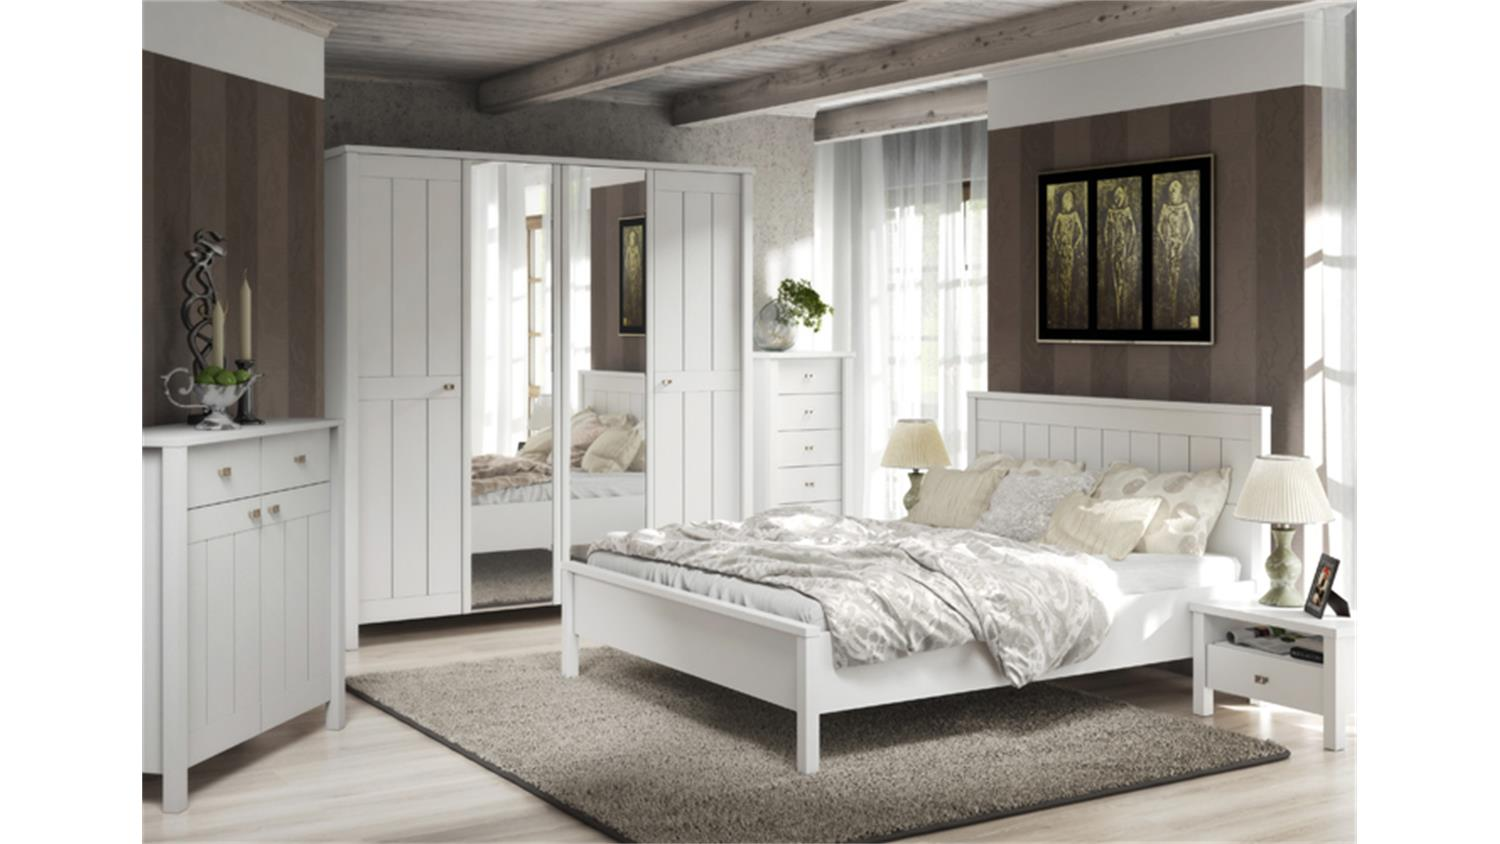 wohnideen schlafzimmer weiss. Black Bedroom Furniture Sets. Home Design Ideas